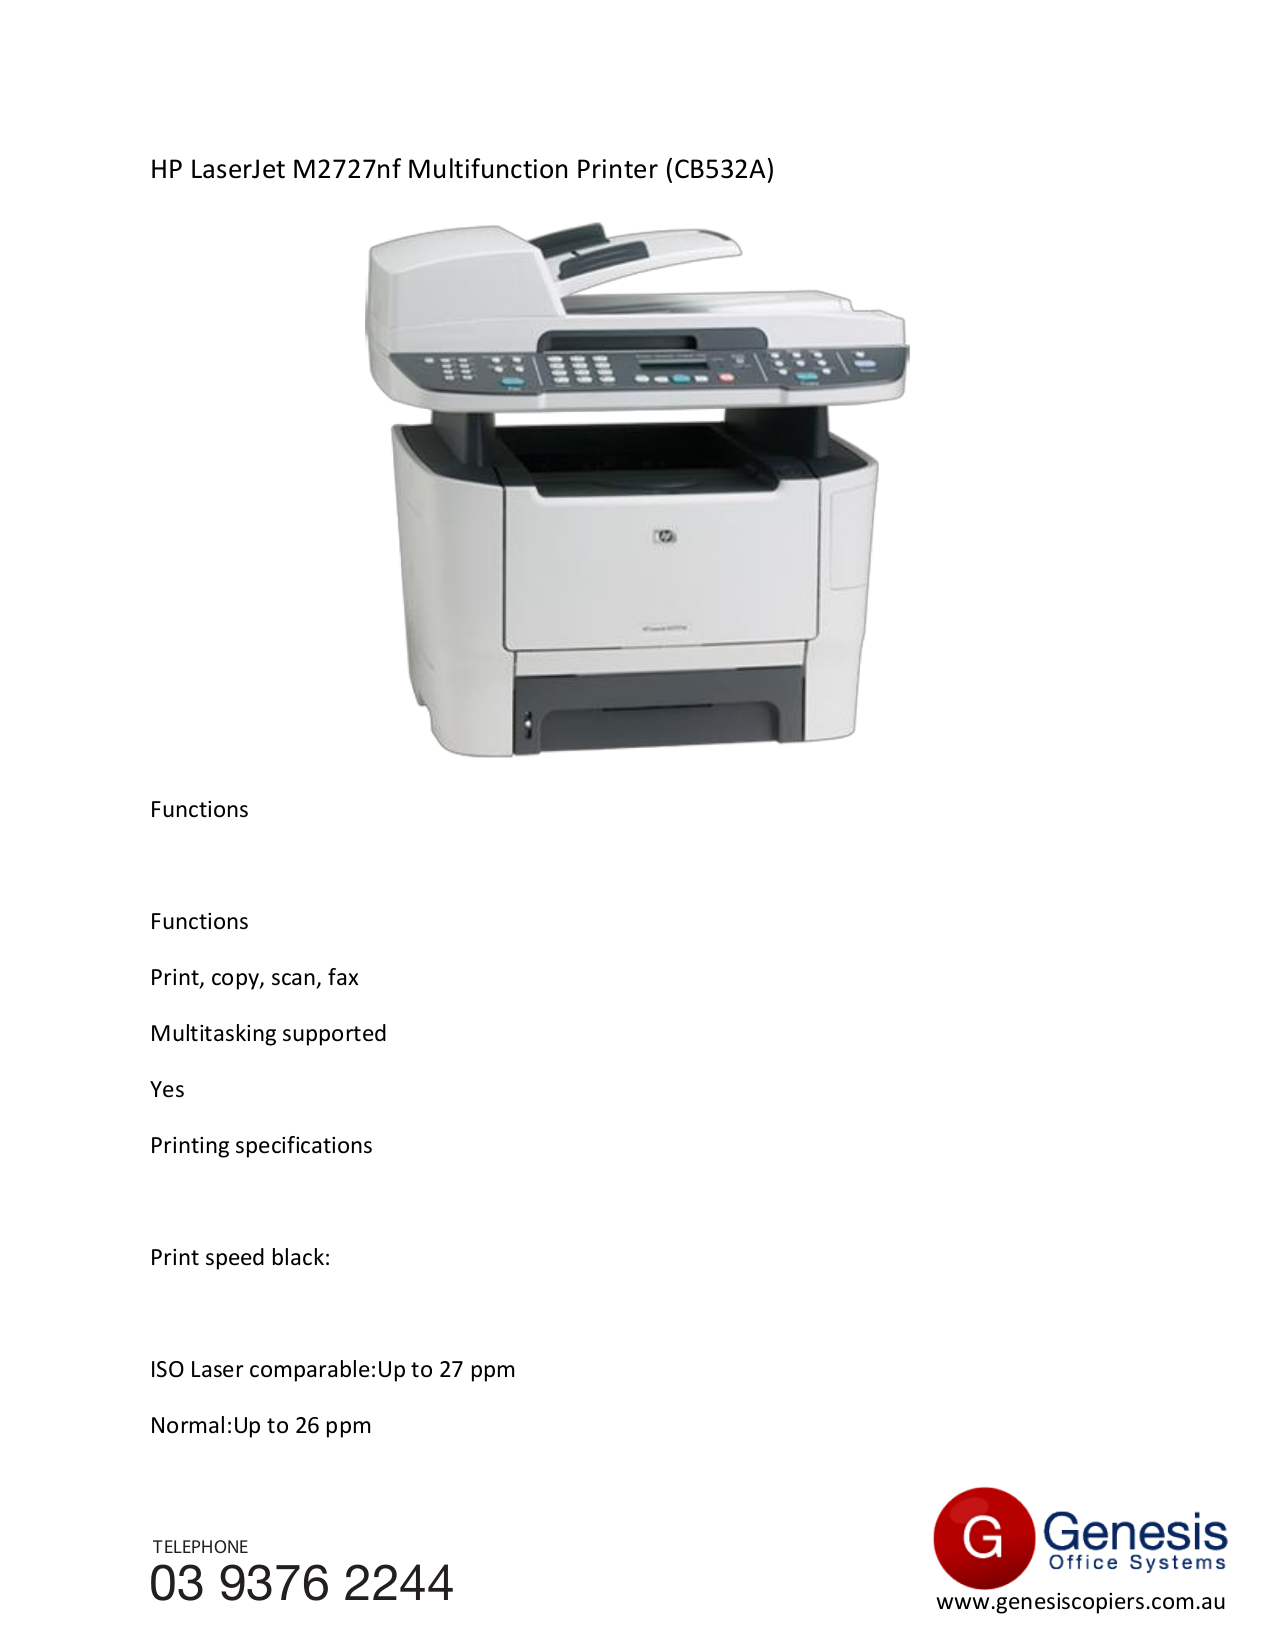 hp 2727nf manual how to and user guide instructions u2022 rh taxibermuda co hp laserjet m2727 user manual hp laserjet m2727nf user manual